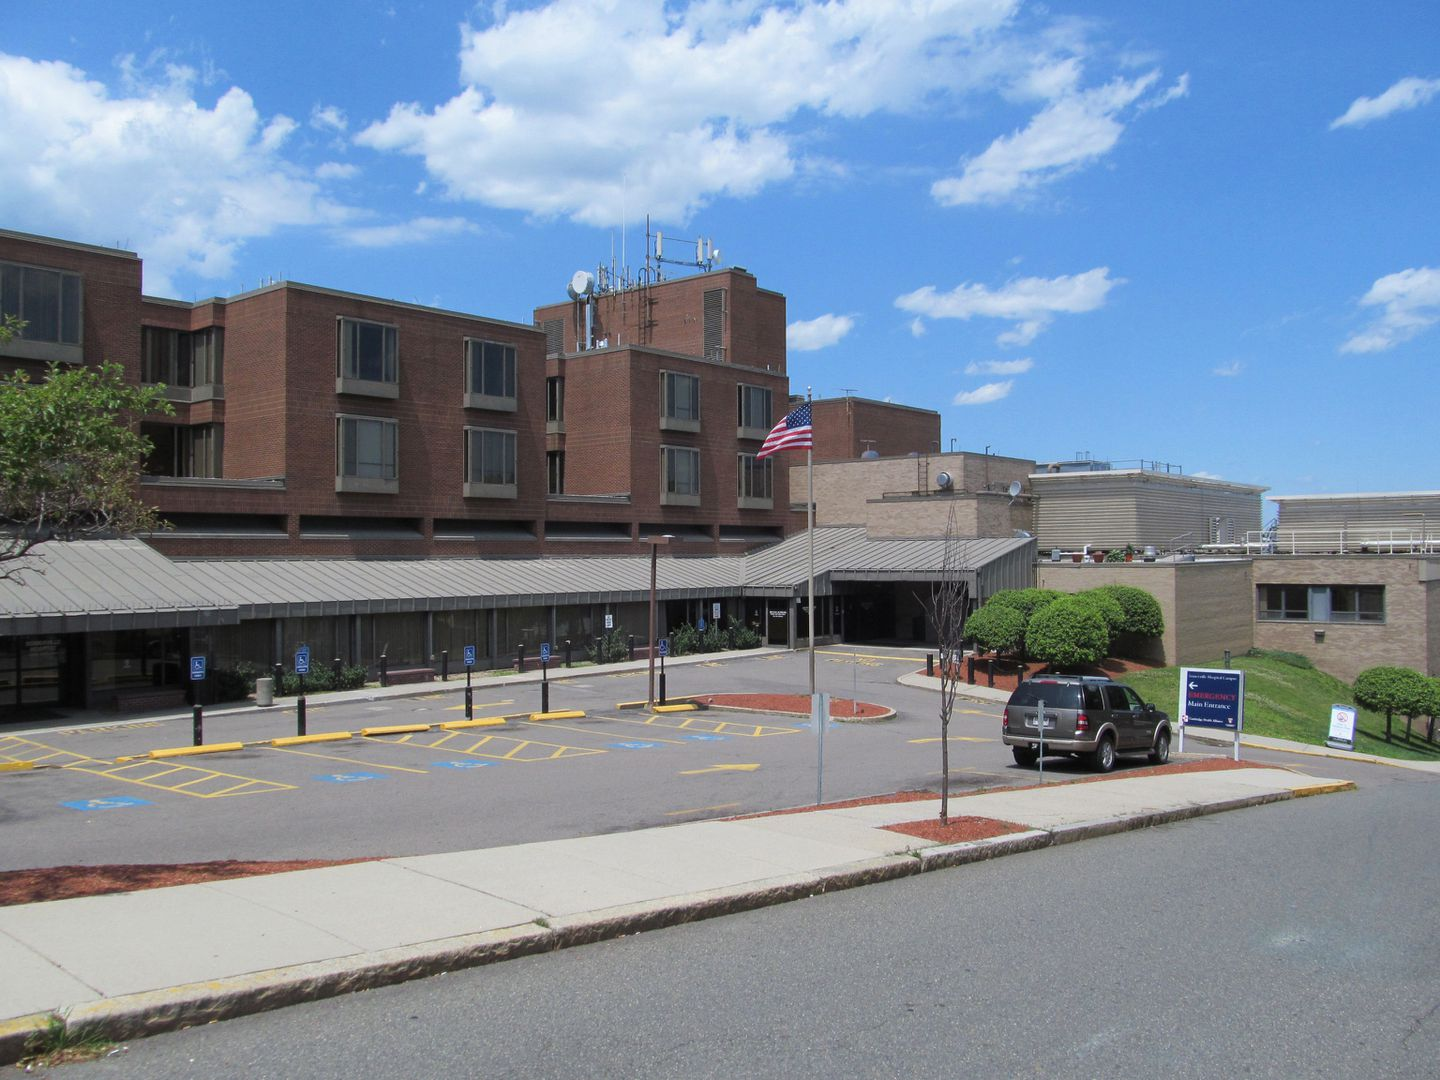 The emergency entrance at Somerville Hospital before new signs were added.